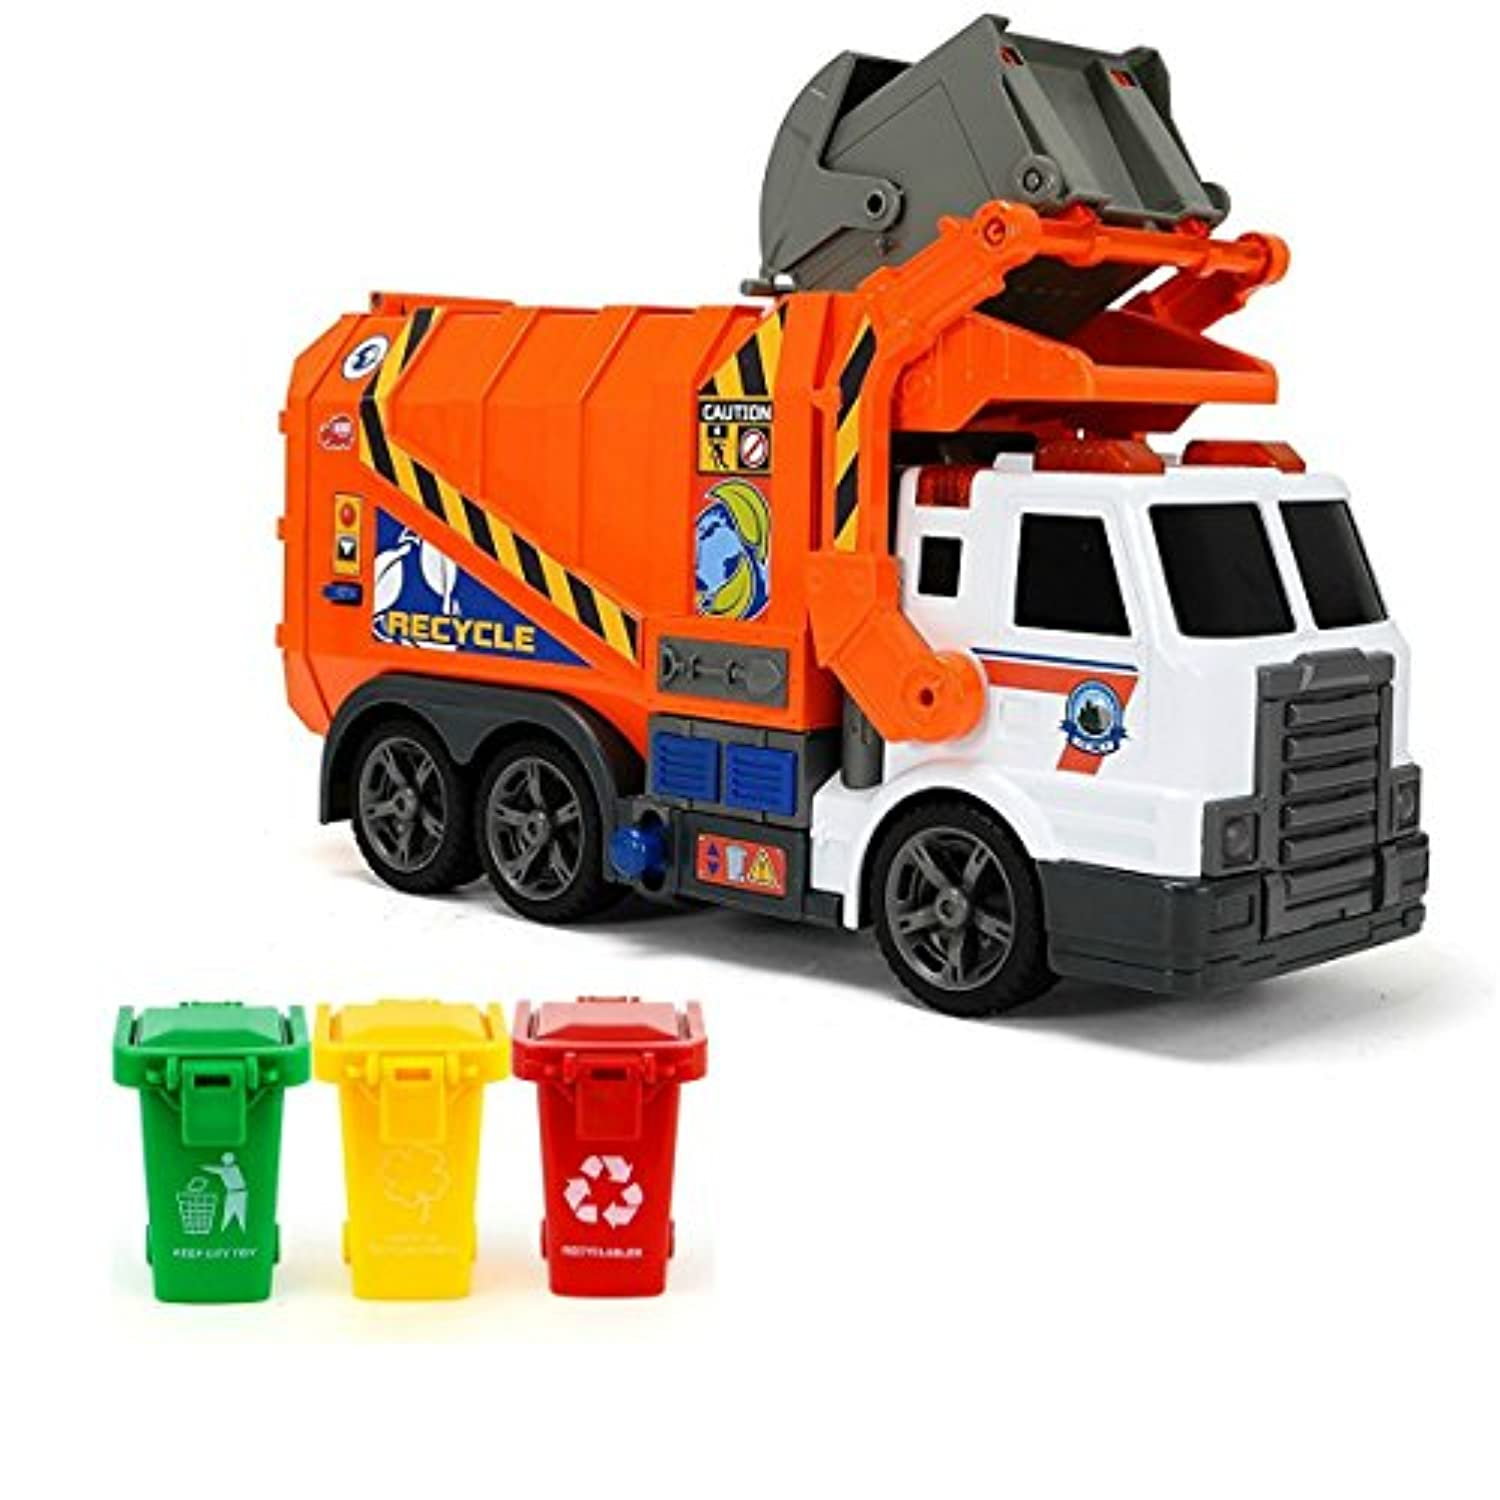 DickieおもちゃGarbage Truck &おもちゃGarbage缶セット: Dickie ToysライトとサウンドGarbage Truck with 3 aitingおもちゃGarbage缶レッド、グリーン、イエロー